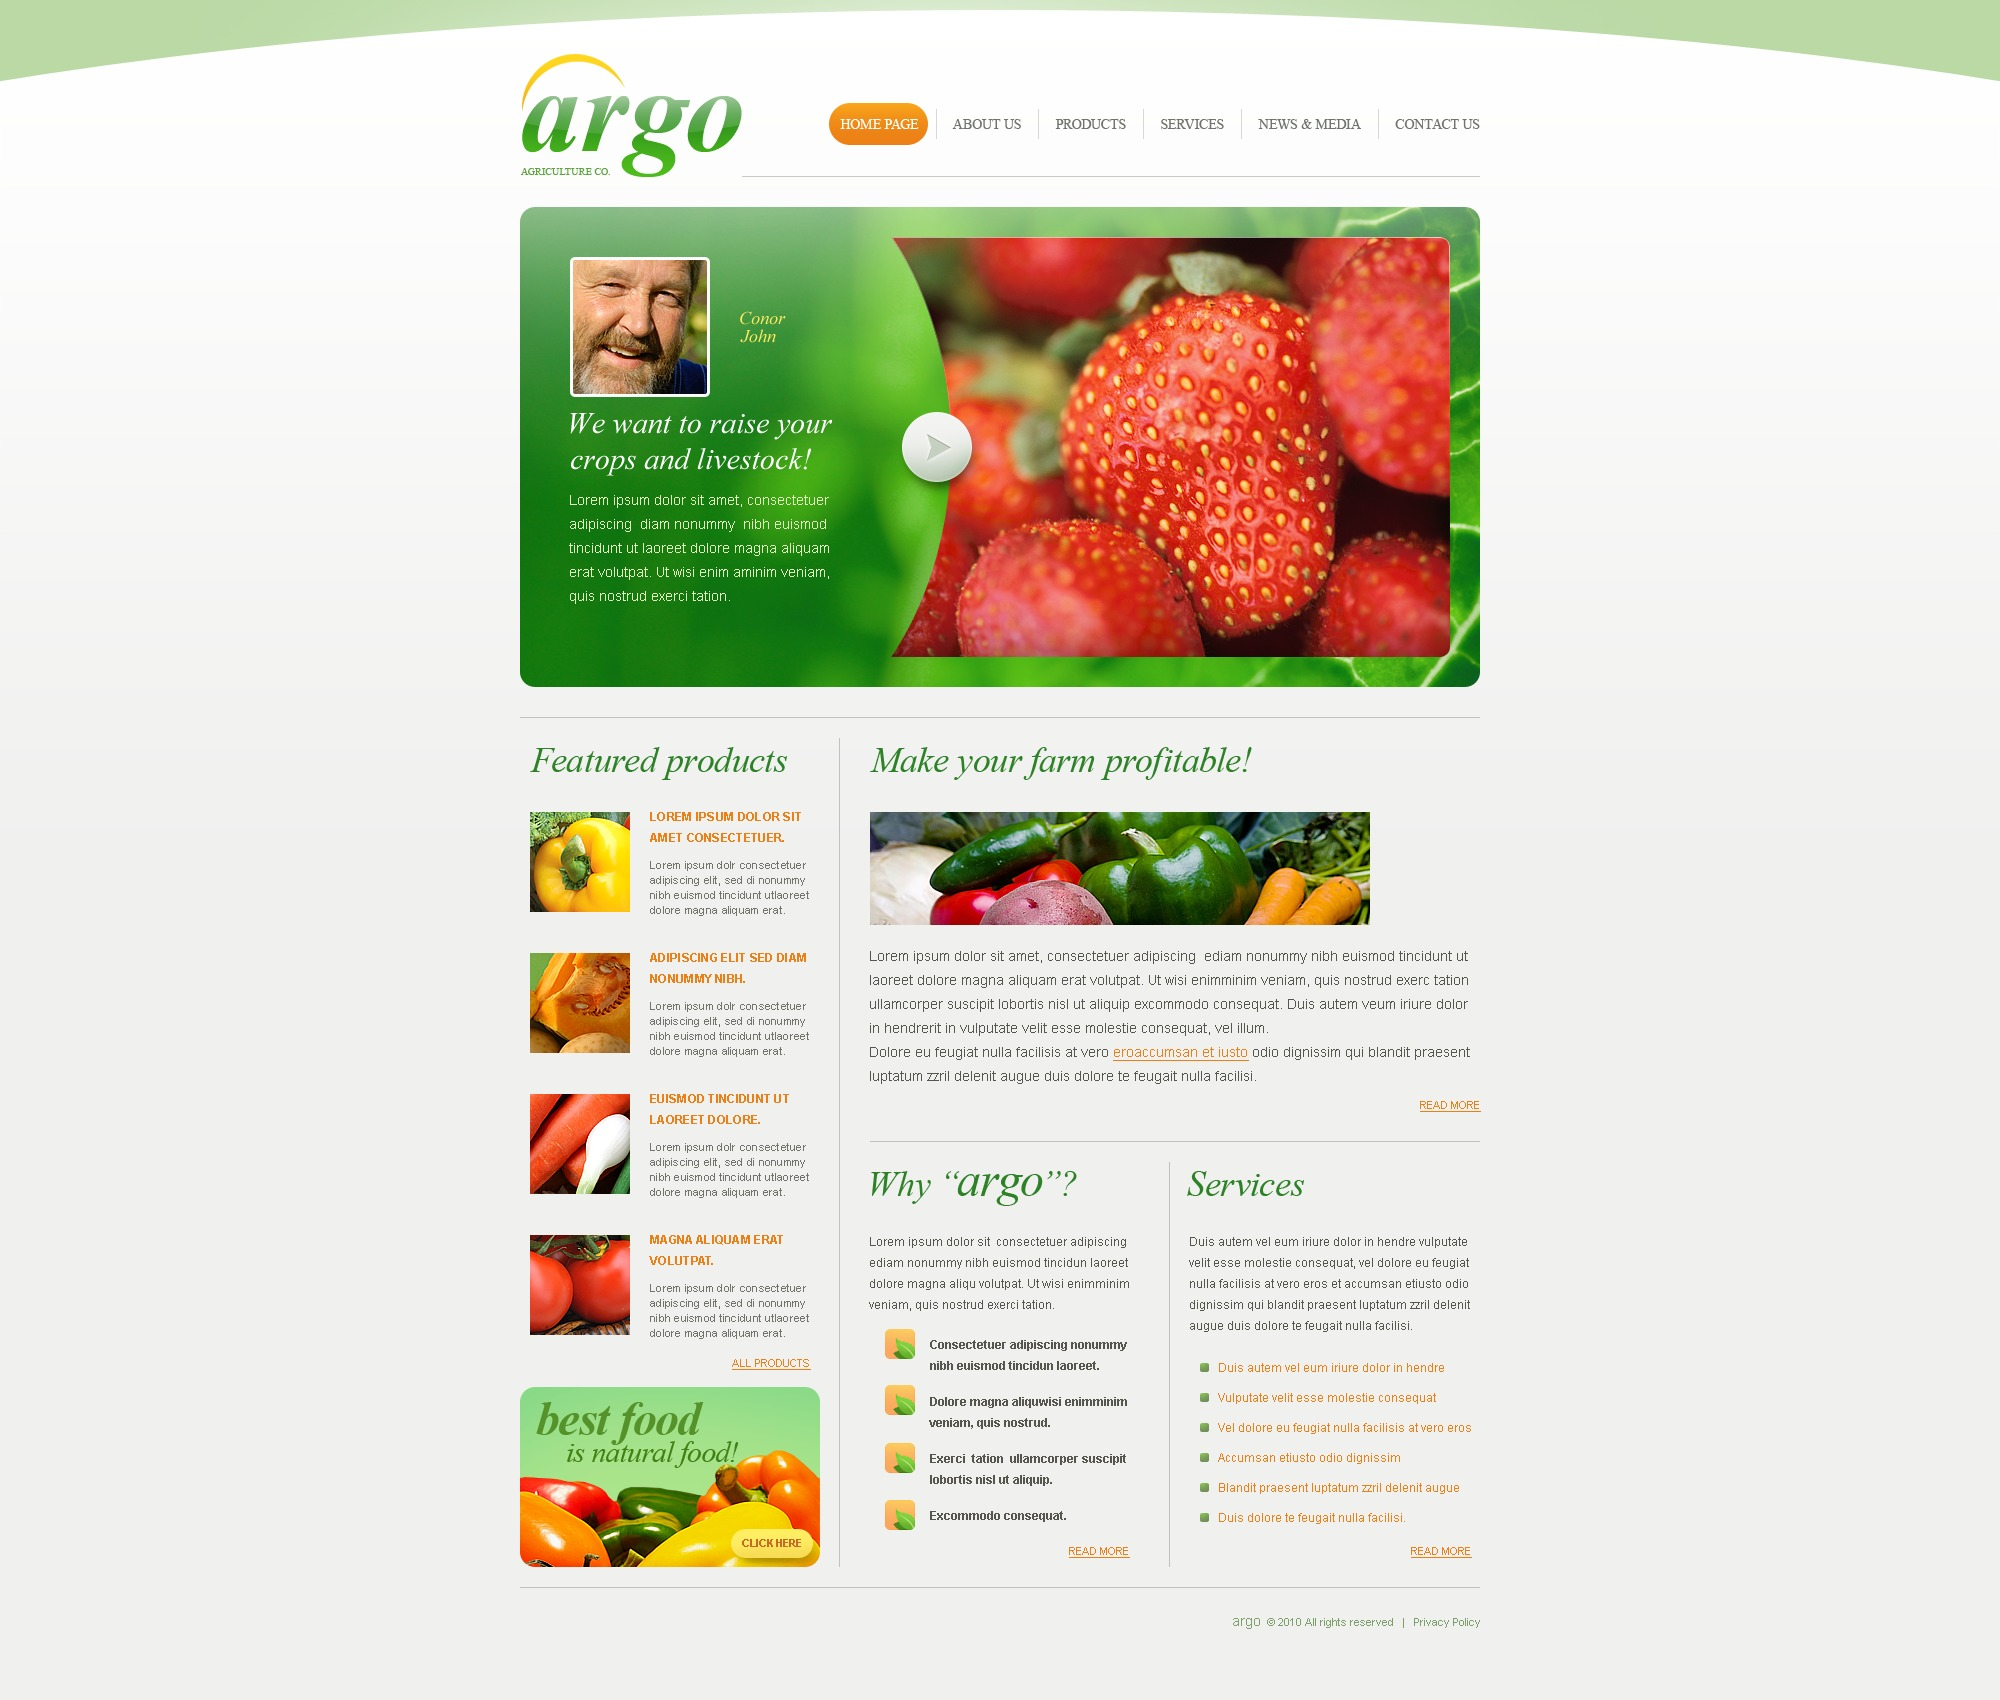 The Agro Agriculture Company PSD Design 54495, one of the best PSD templates of its kind (agriculture, flash 8, wide), also known as agro agriculture company PSD template, business PSD template, grain-crops PSD template, cereals PSD template, field PSD template, combine PSD template, harvest PSD template, farming PSD template, plants PSD template, services PSD template, products solutions PSD template, market PSD template, delivery PSD template, resource PSD template, grassland PSD template, equipment PSD template, nitrates PSD template, fertilizer PSD template, clients PSD template, partners PSD template, innovations PSD template, support PSD template, information dealer PSD template, stocks PSD template, team and related with agro agriculture company, business, grain-crops, cereals, field, combine, harvest, farming, plants, services, products solutions, market, delivery, resource, grassland, equipment, nitrates, fertilizer, clients, partners, innovations, support, information dealer, stocks, team, etc.